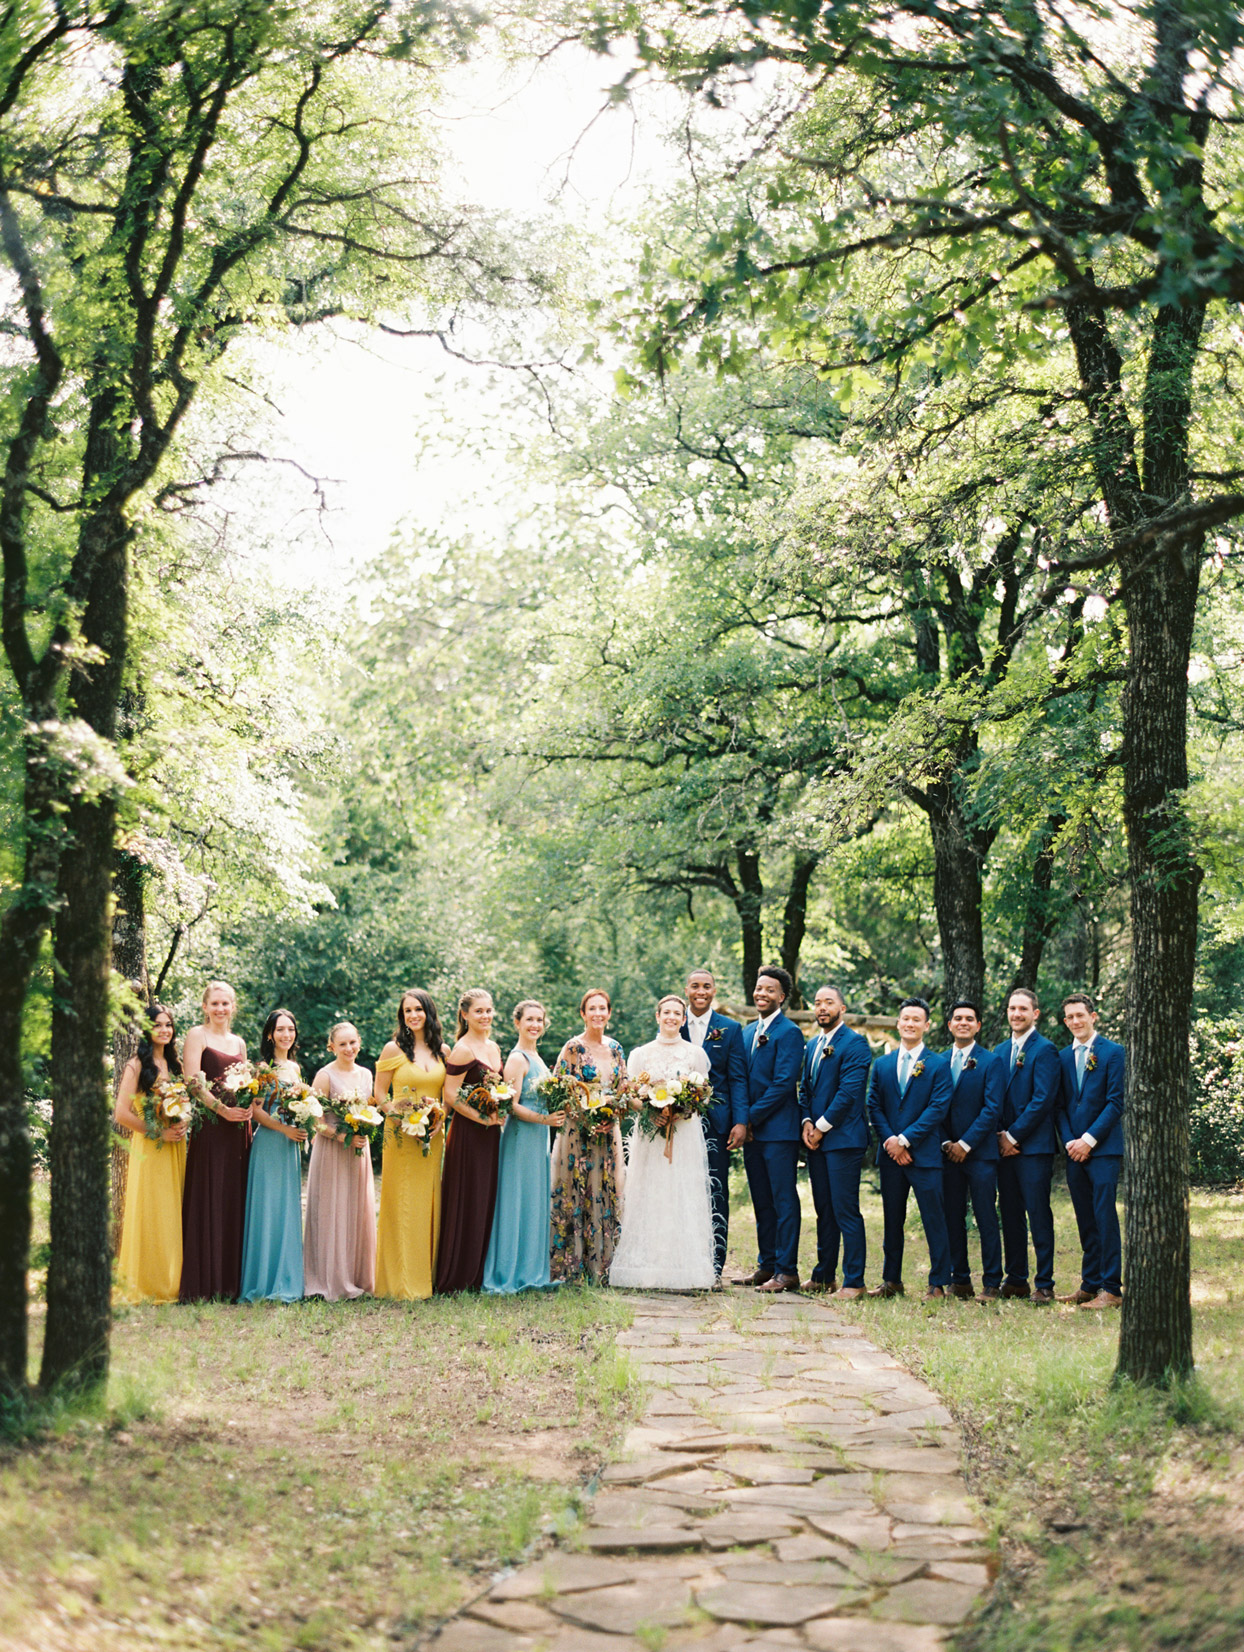 Wedding party posing on stone path in wooded area